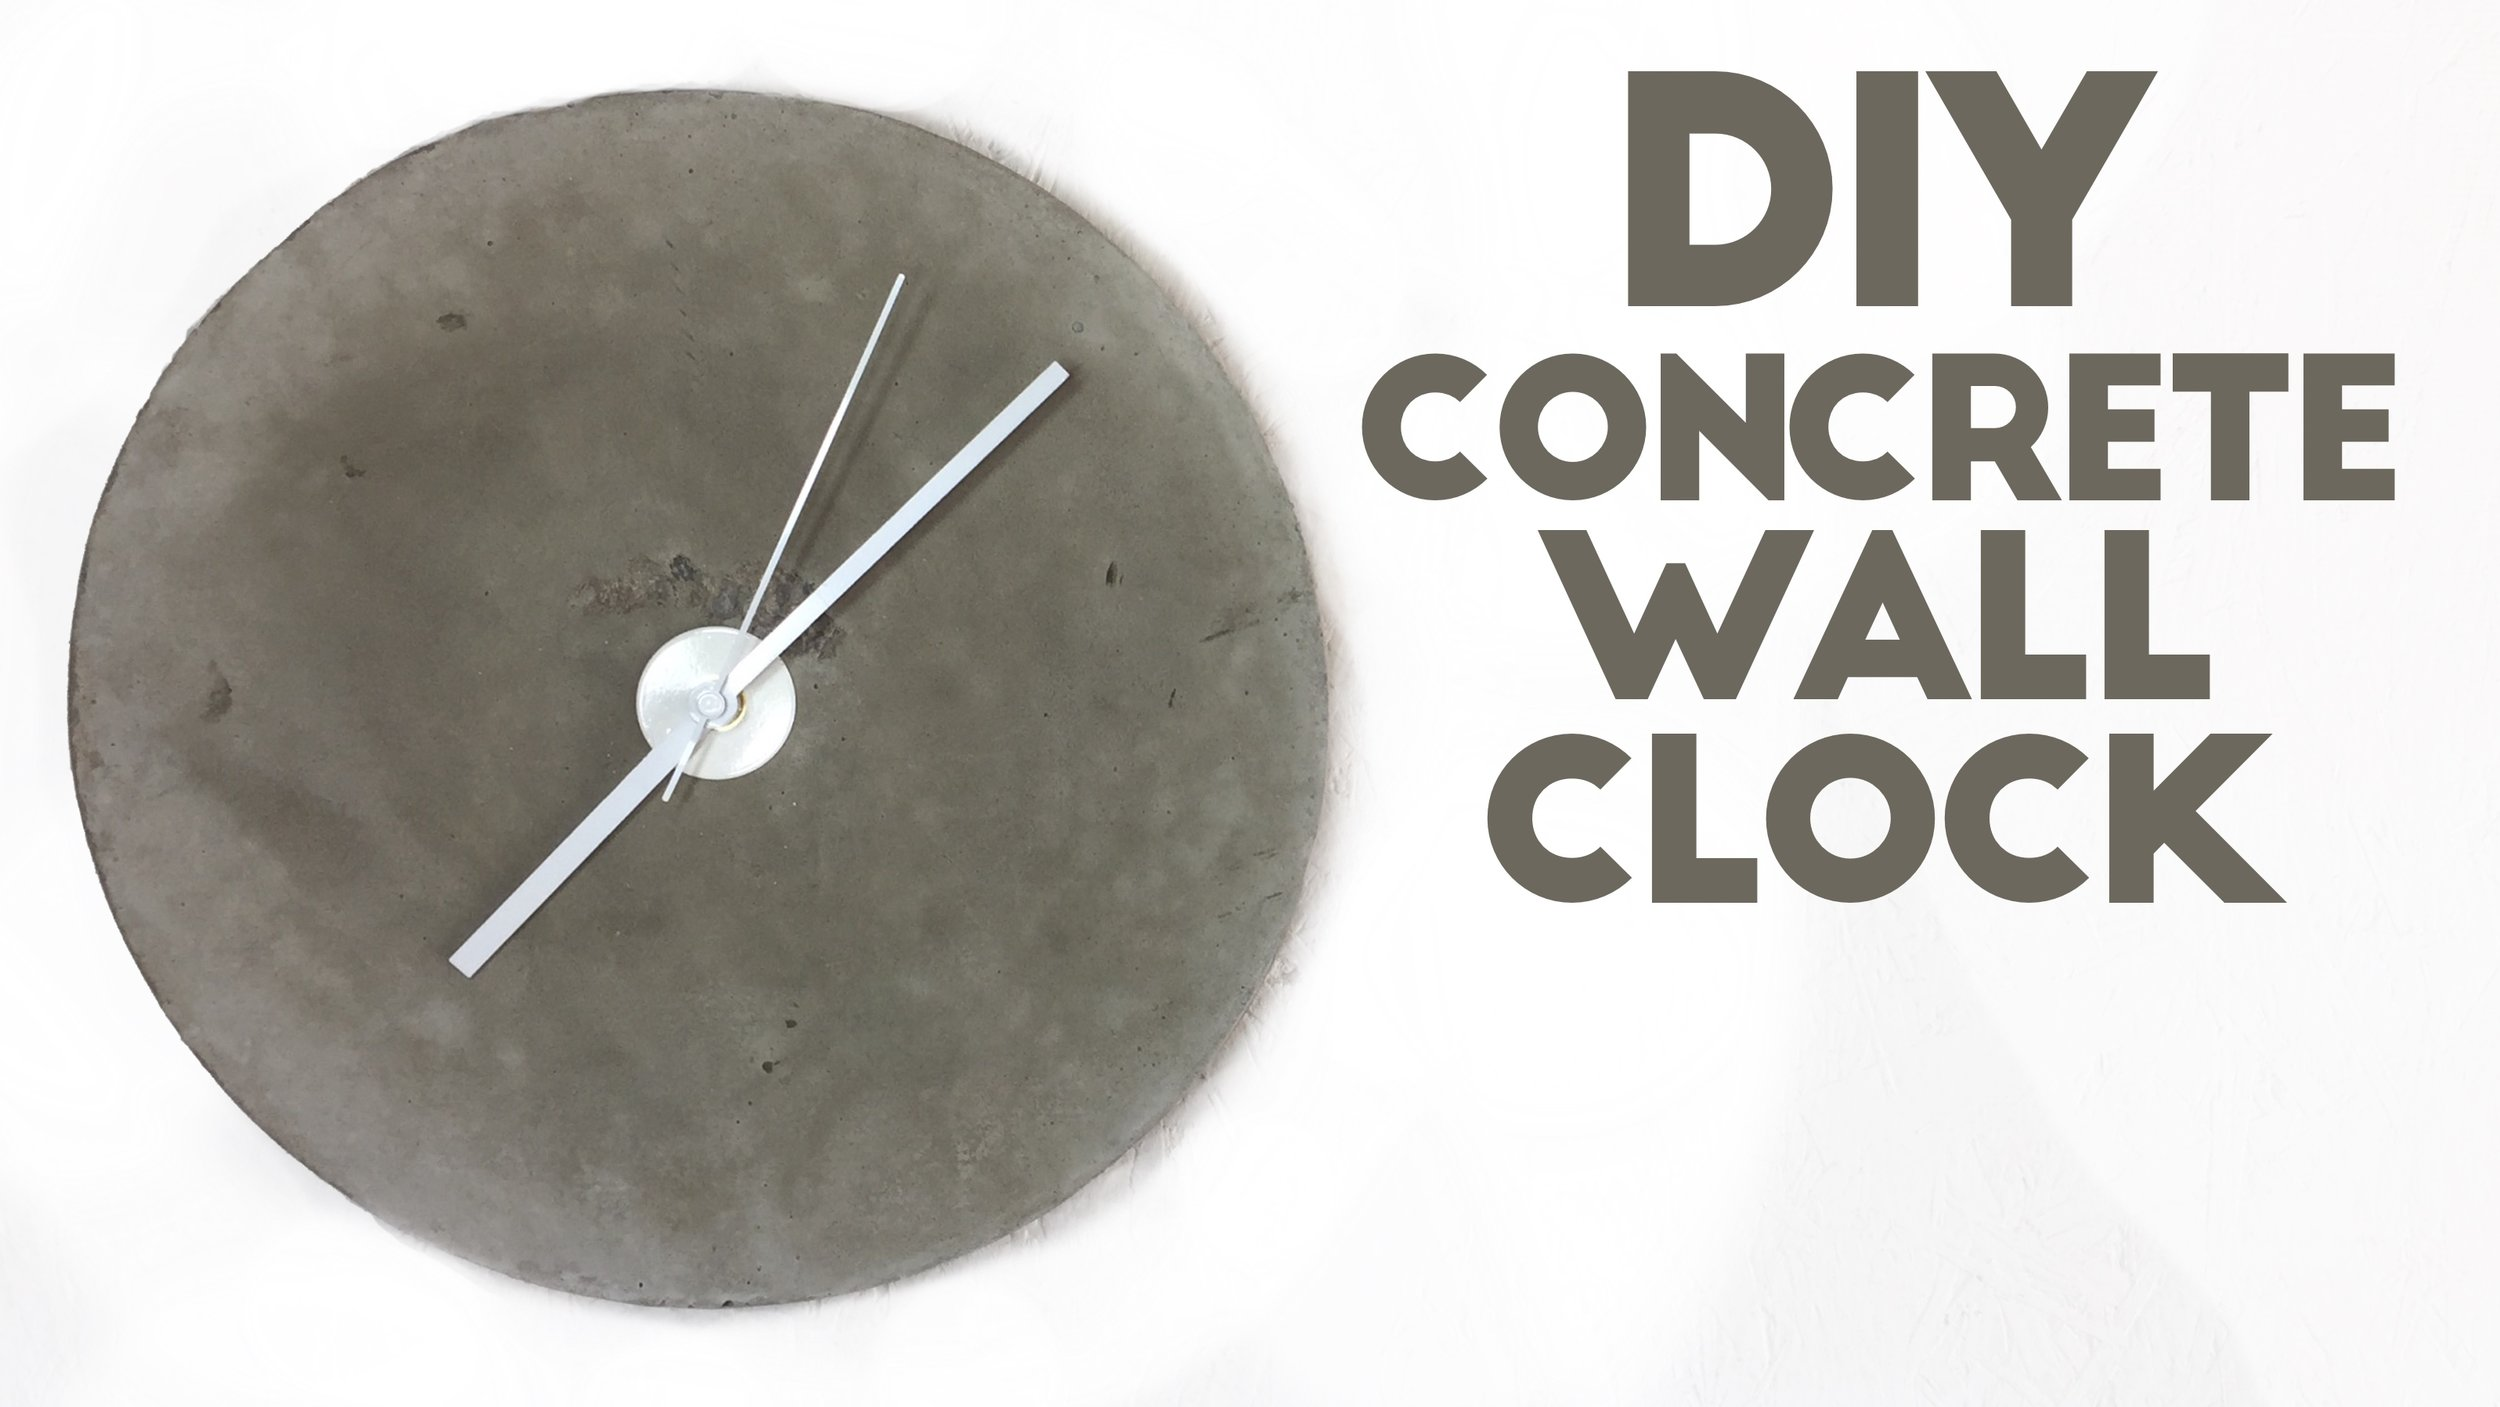 Concrete Clock.jpg